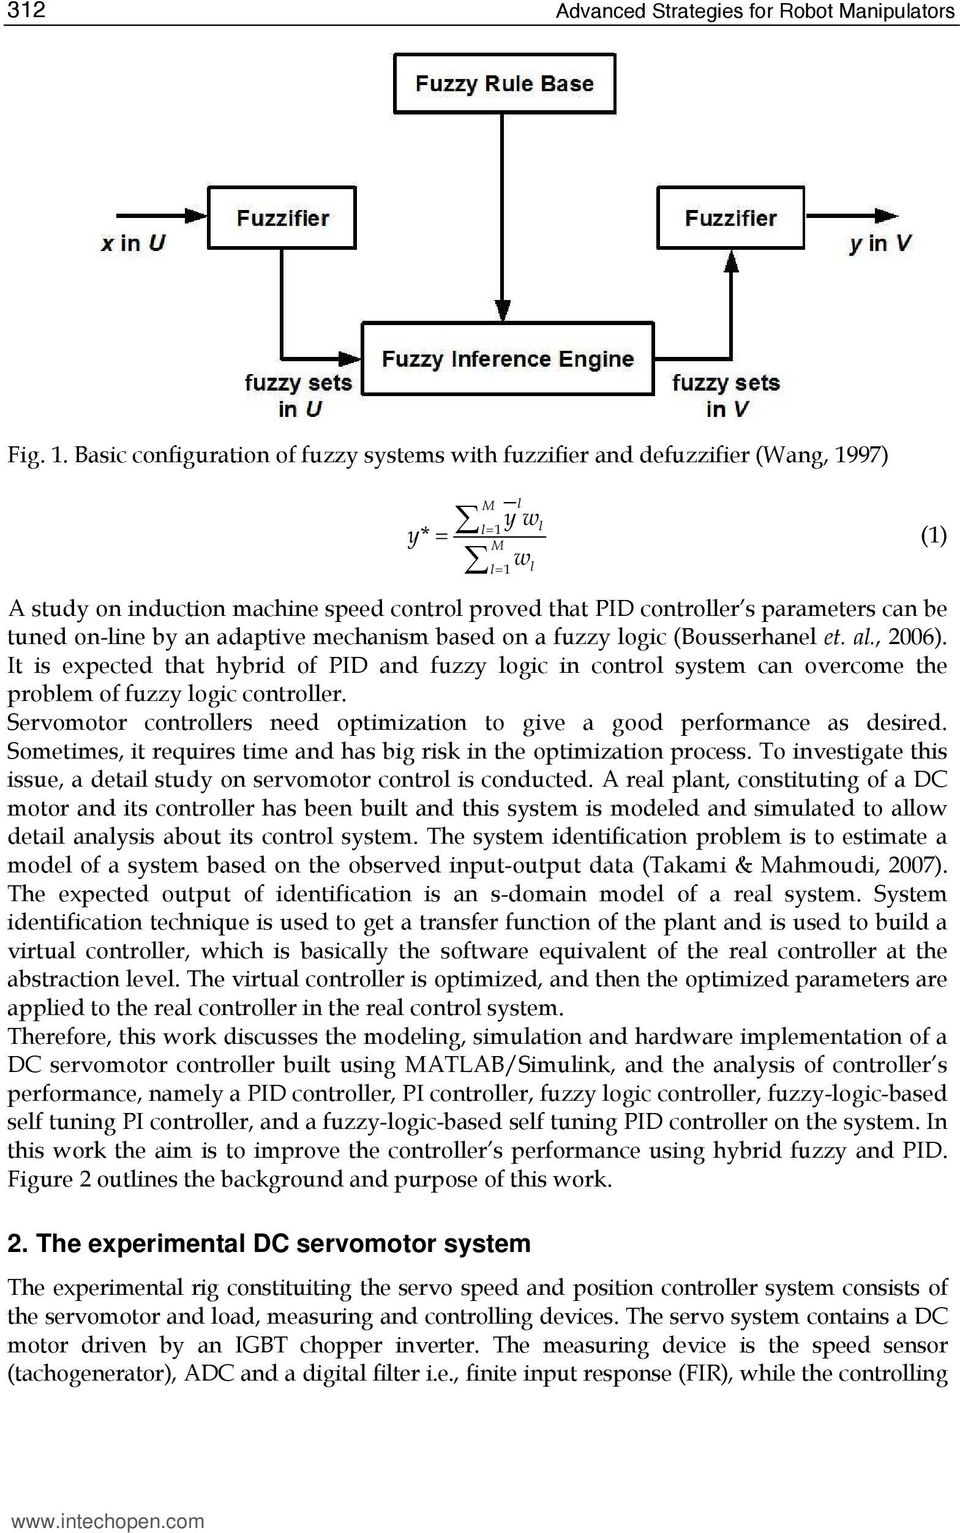 Development Of Fuzzy Logic Based Self Tuning Pi Controller For Simple Bidirectional Dc Motor Speed Electronic Boy Can Be Tuned On Line By An Adaptive Mechanism A